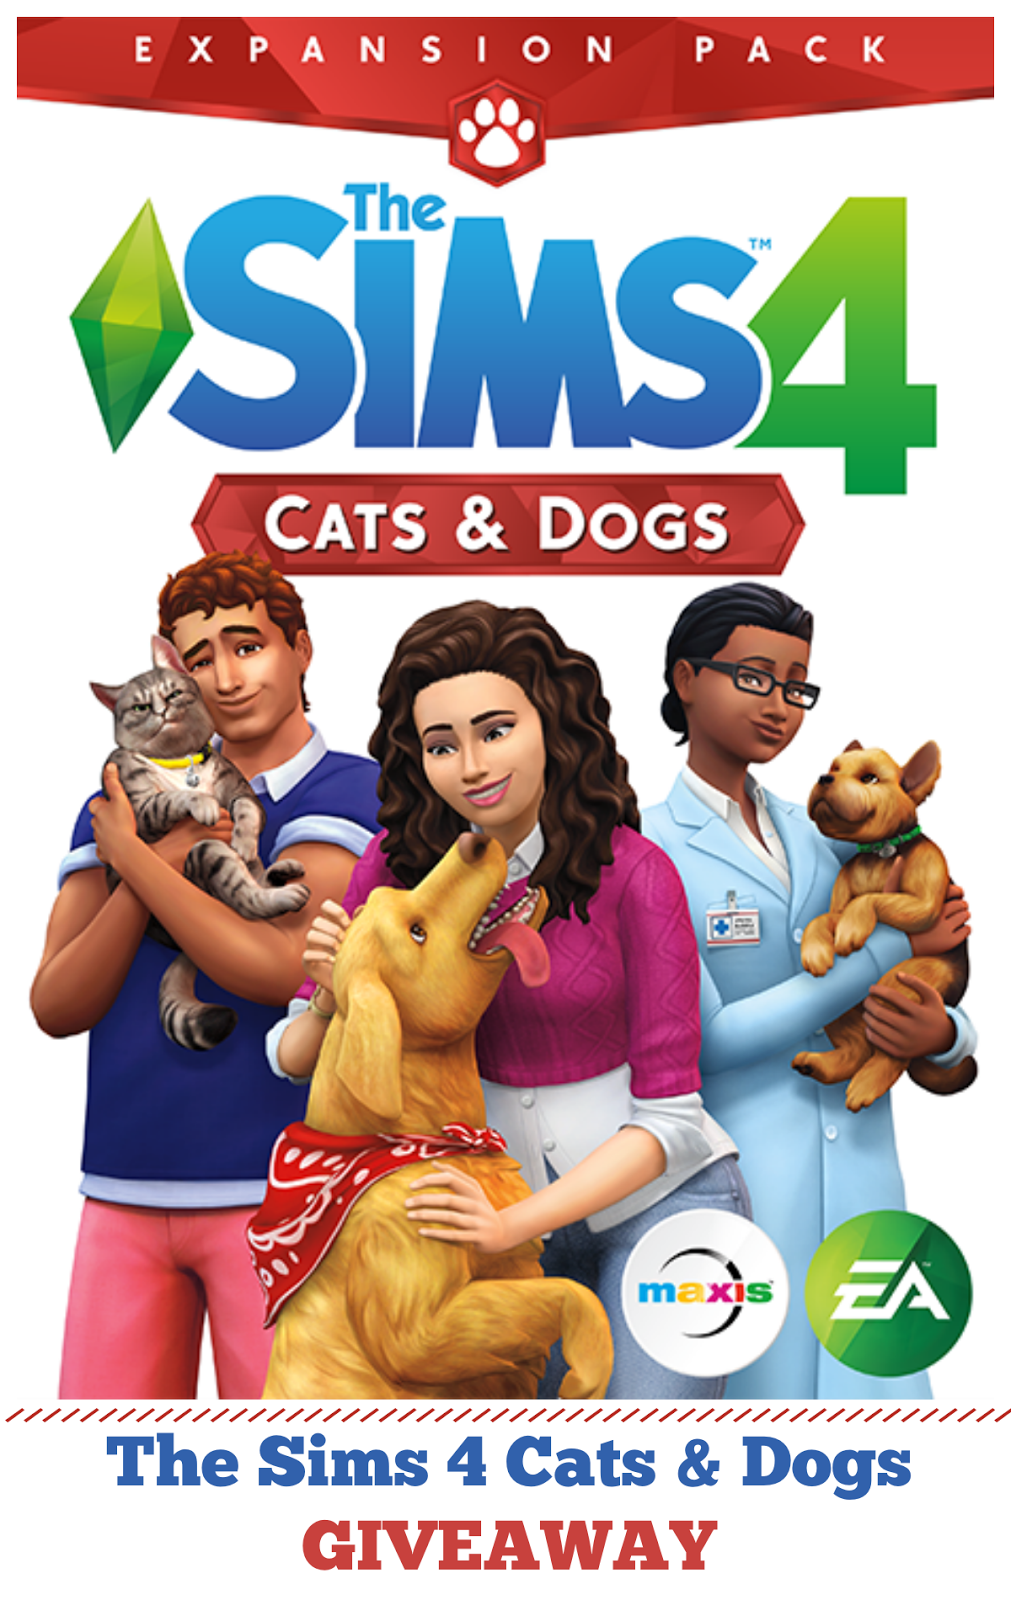 sims 4 giveaway the sims 4 introduces cats dogs giveaway pawsitively 8345